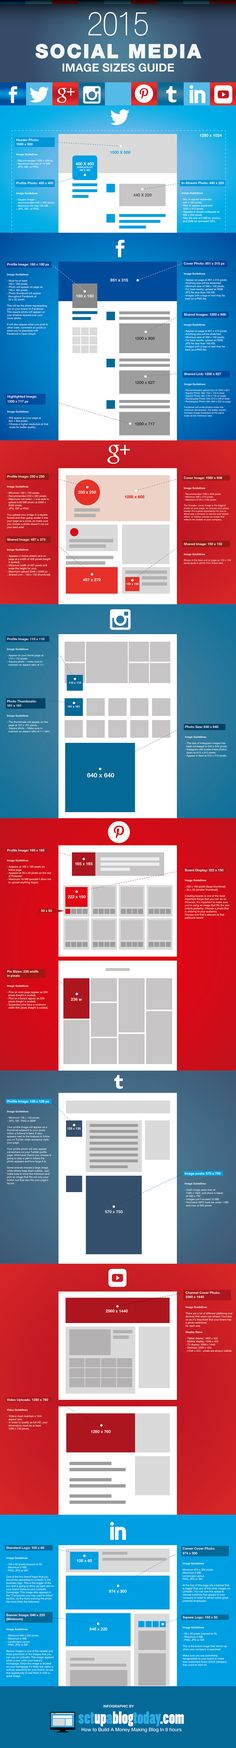 2015 Social Media Image Size Cheat Sheet [Infographic]